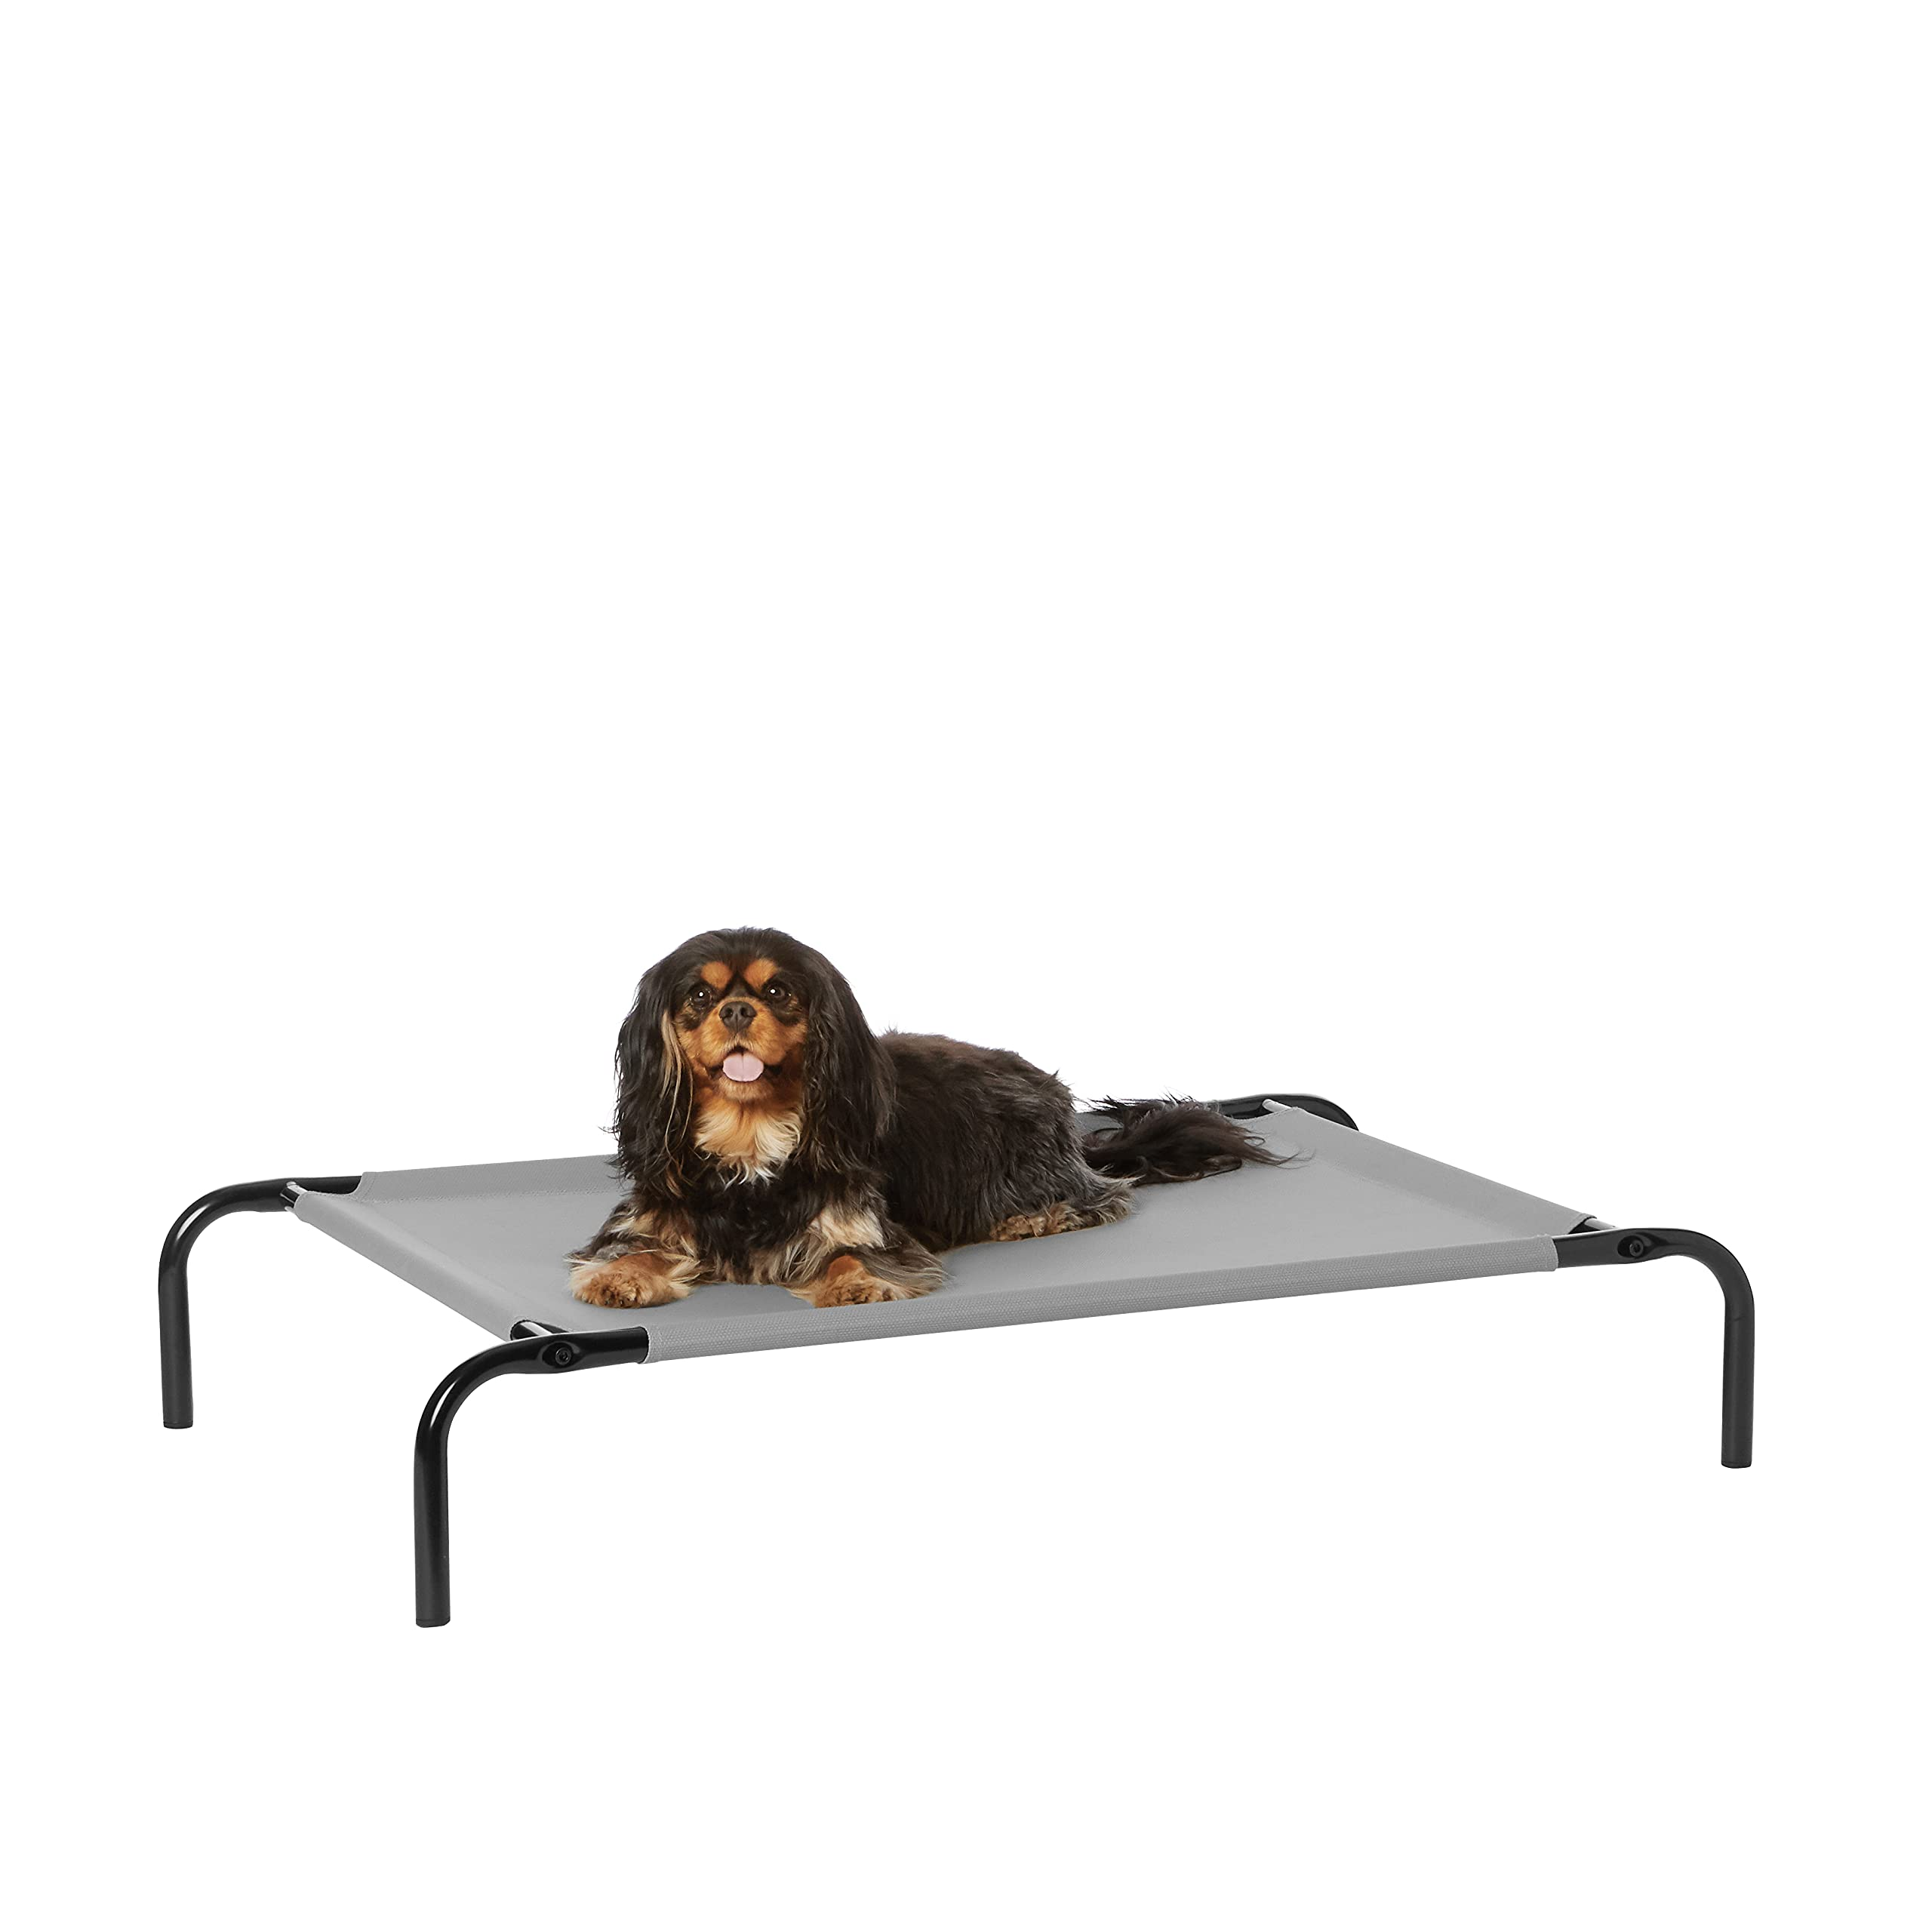 Amazon Basics Cooling Elevated Pet Bed